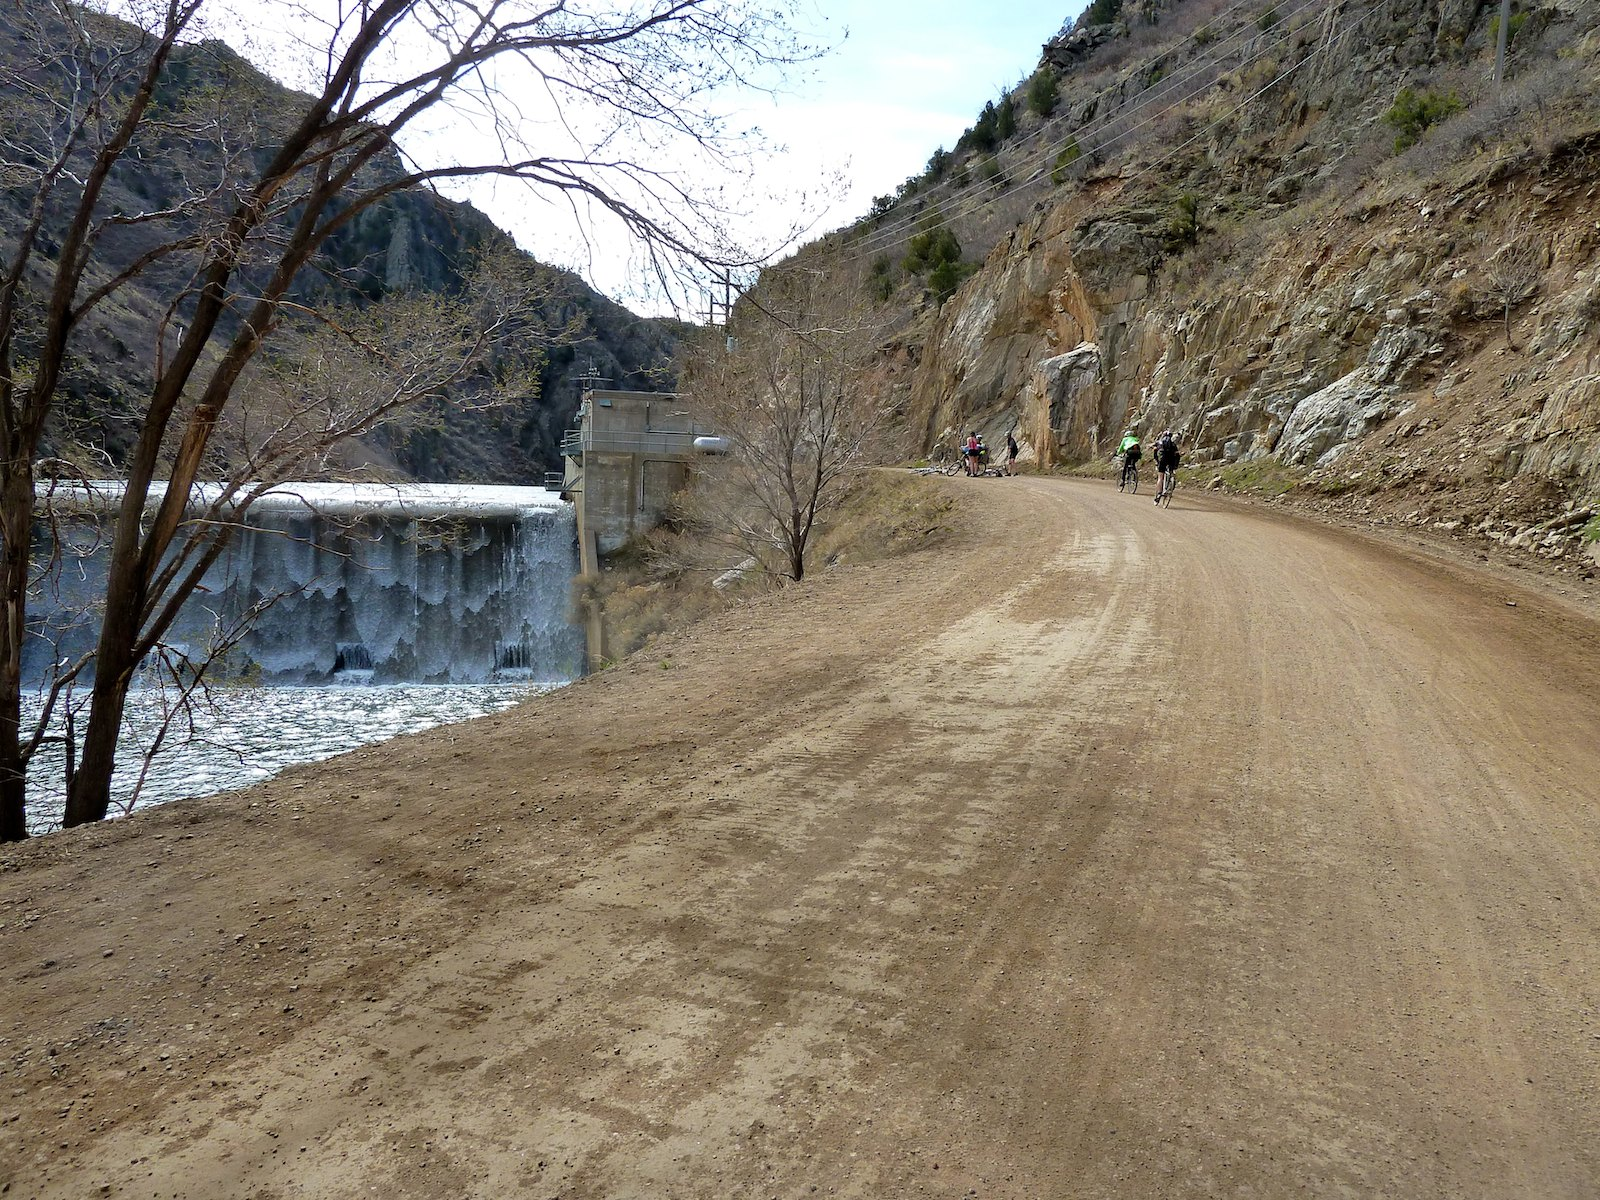 Bike Colorado Rail Waterton Canyon trail goes by